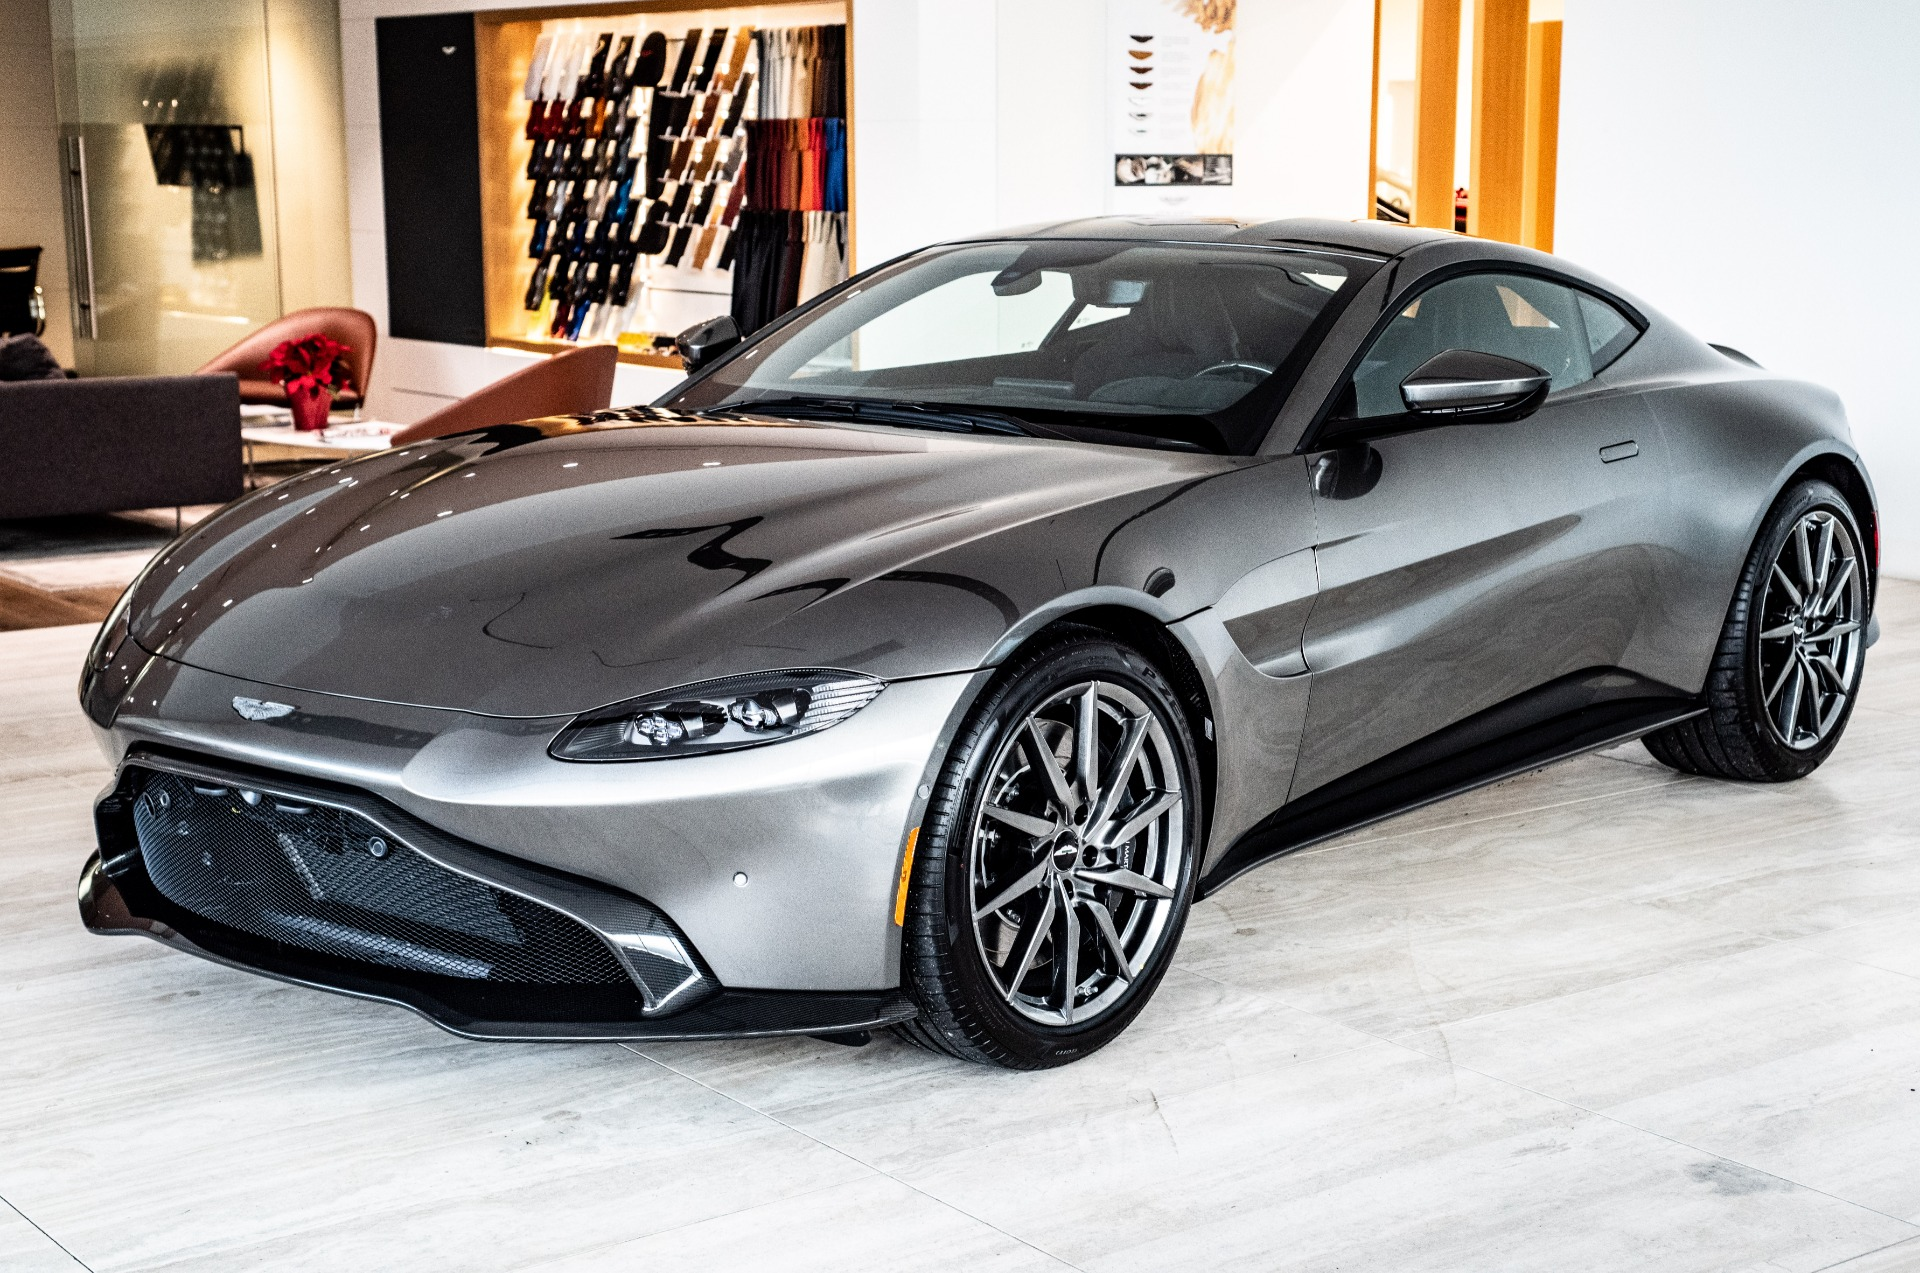 2019 Aston Martin Vantage Stock  9NN01580 for sale near Vienna VA  VA Aston Martin Dealer